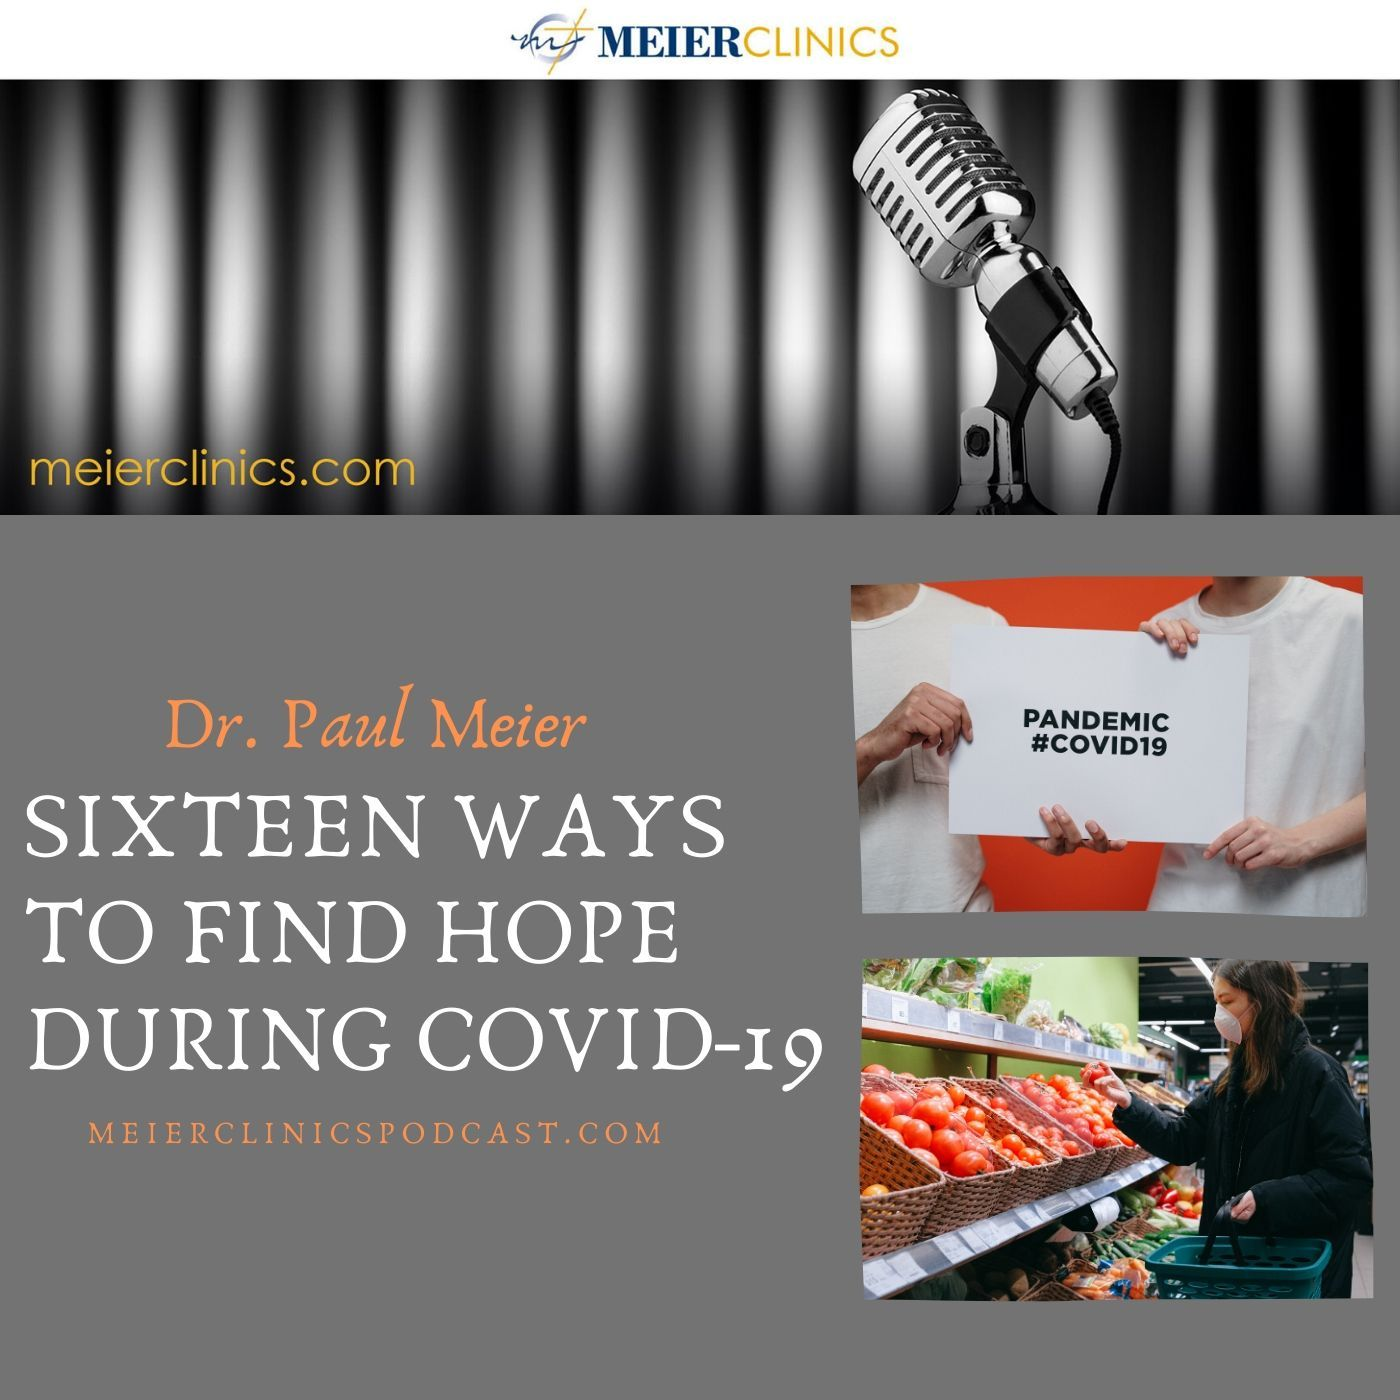 Sixteen Ways to Find Hope During Covid-19 with Dr. Paul Meier